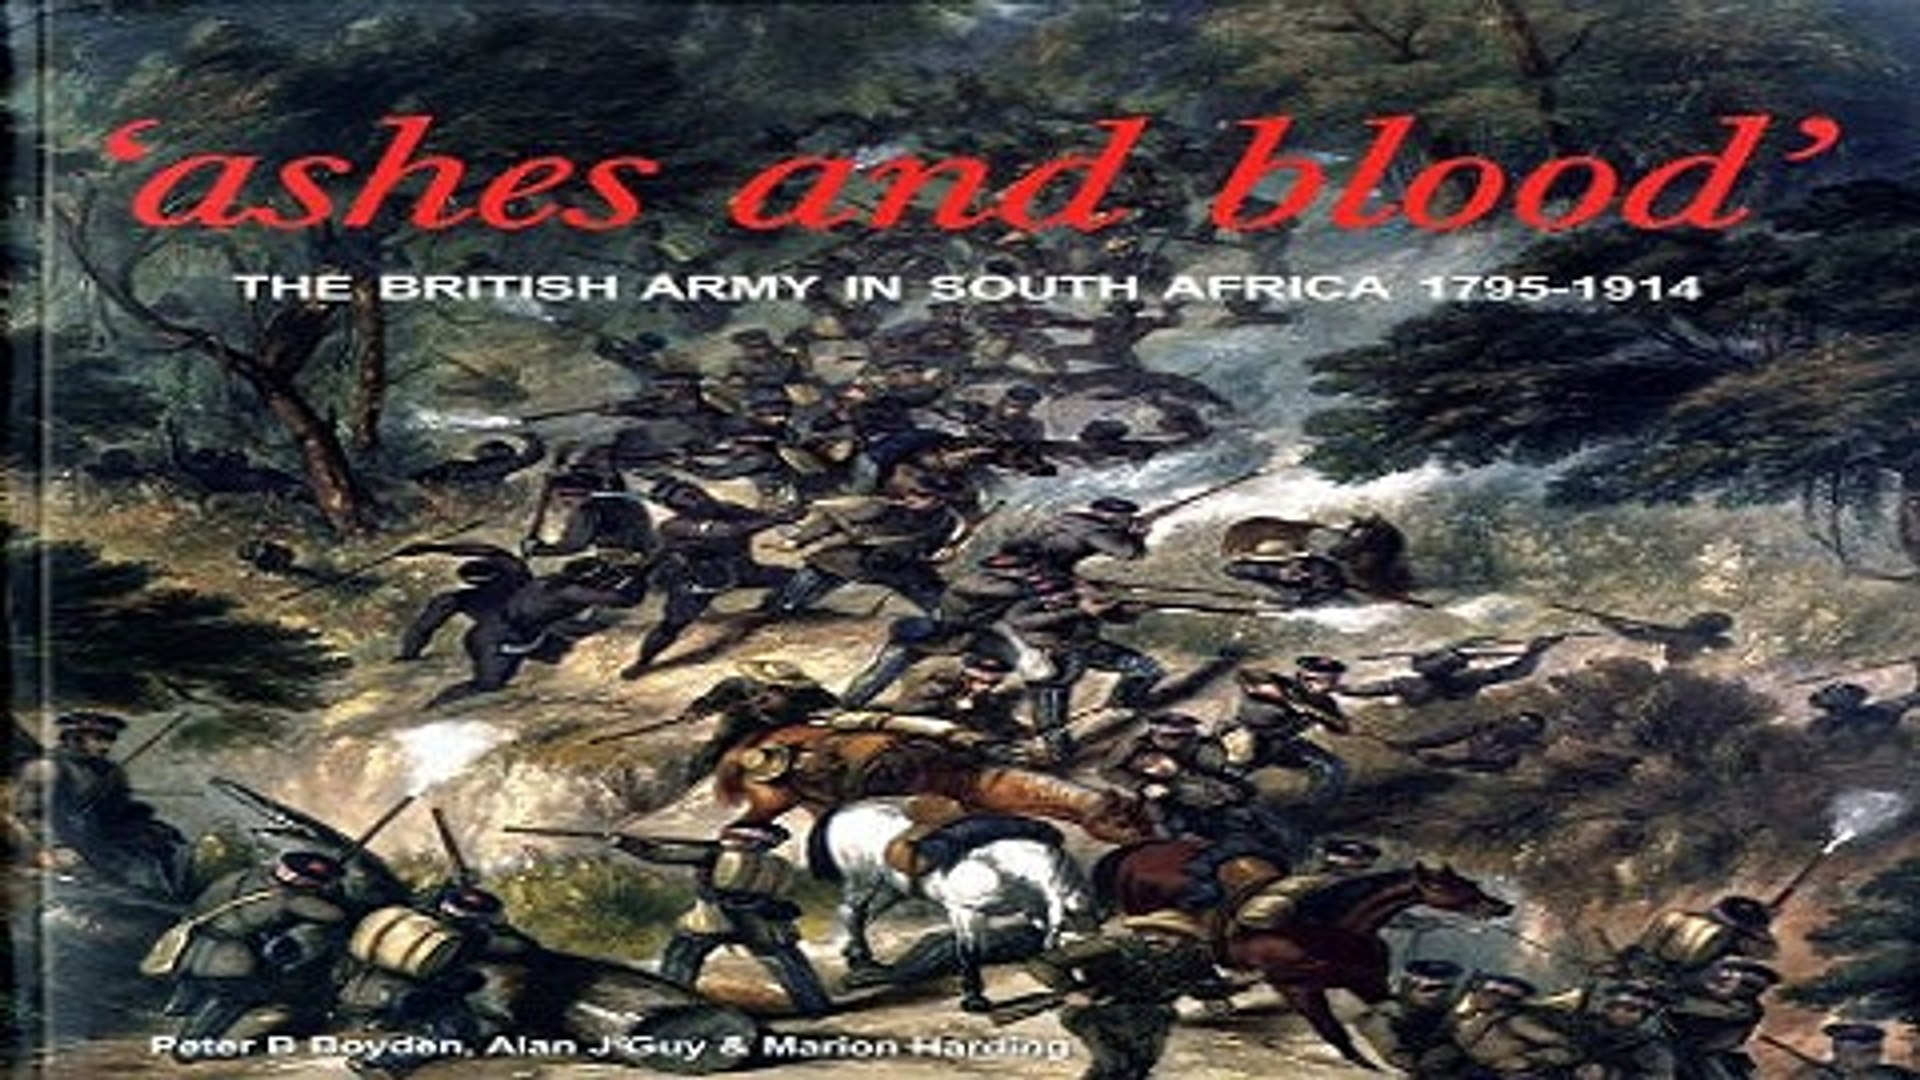 Read Ashes and Blood  The British Army in South Africa  1795 1914 Ebook pdf download